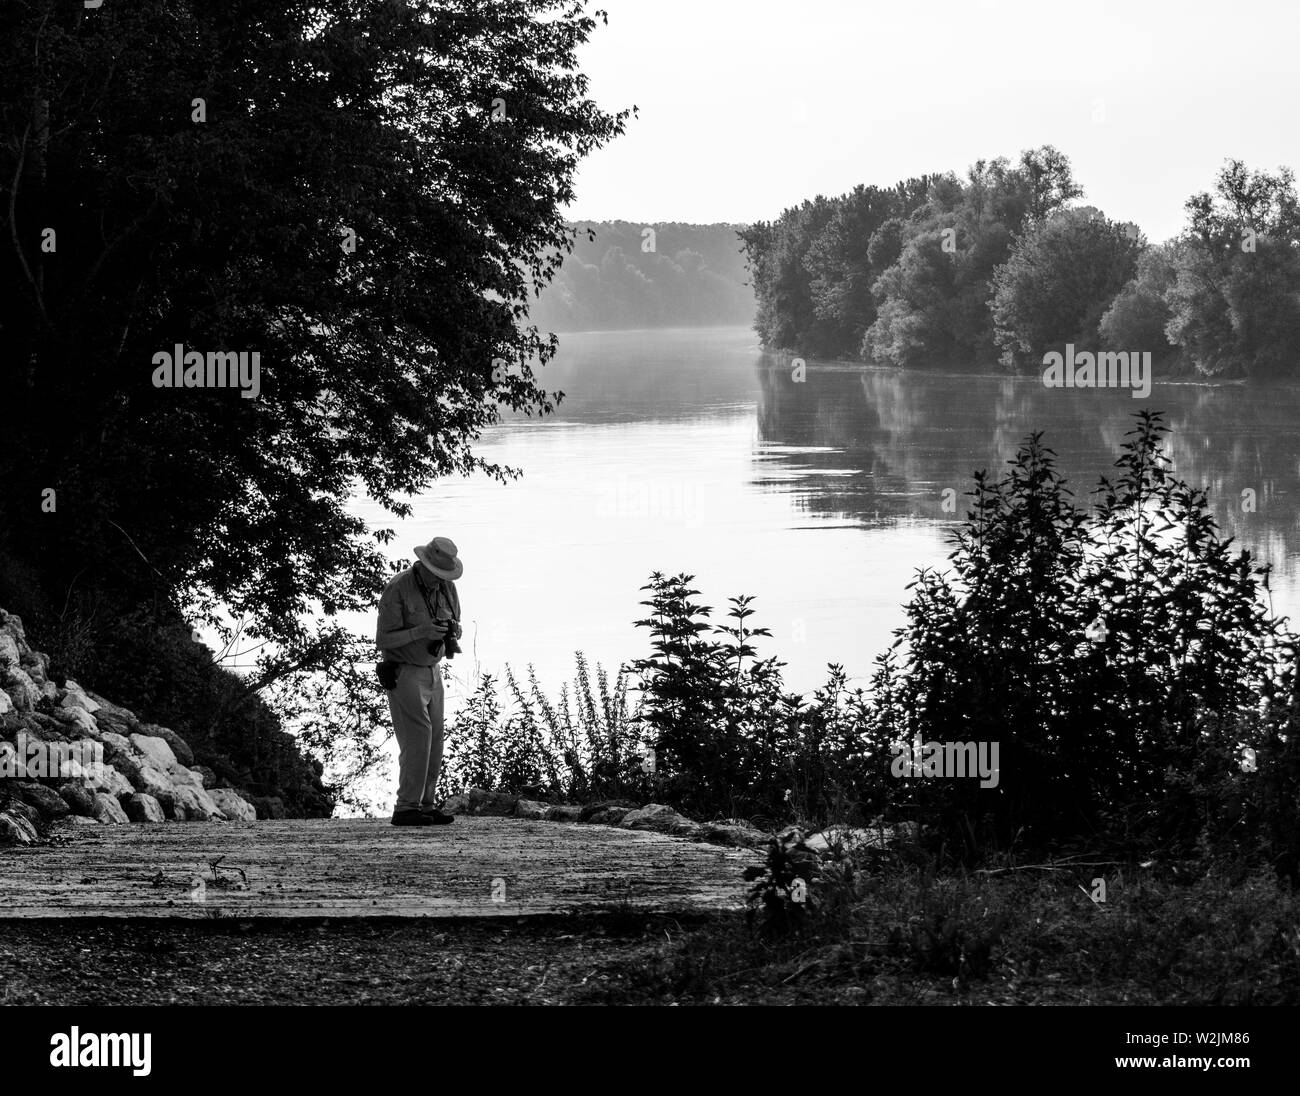 A figure on the riverbank taking photgraphs - Stock Image